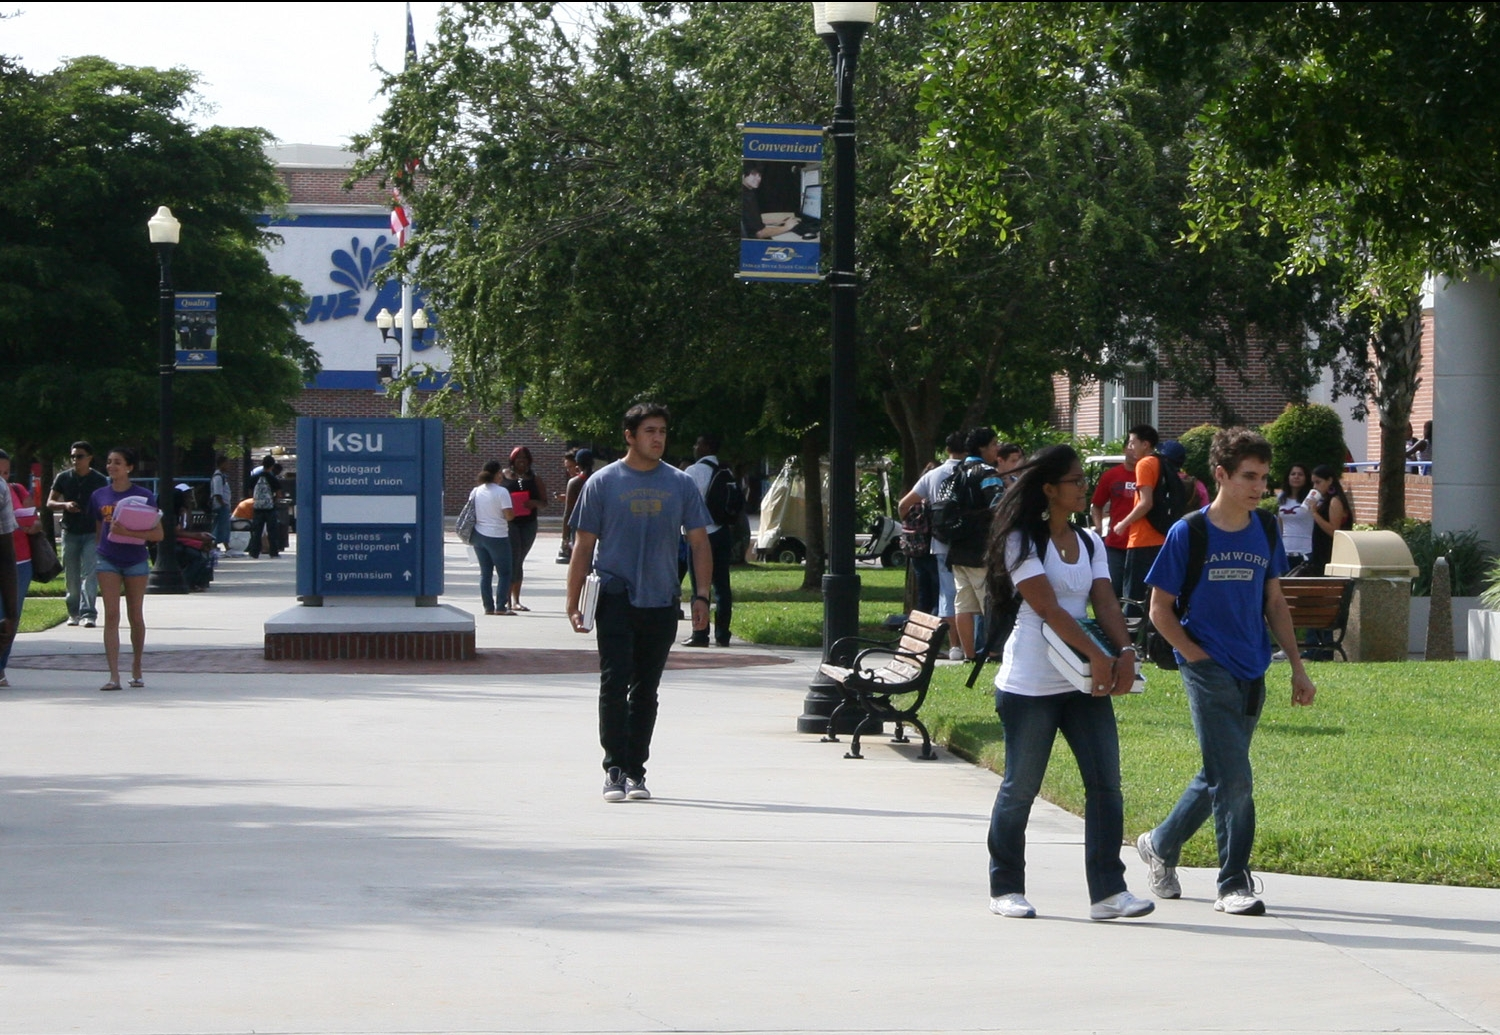 This is an image of students on campus.